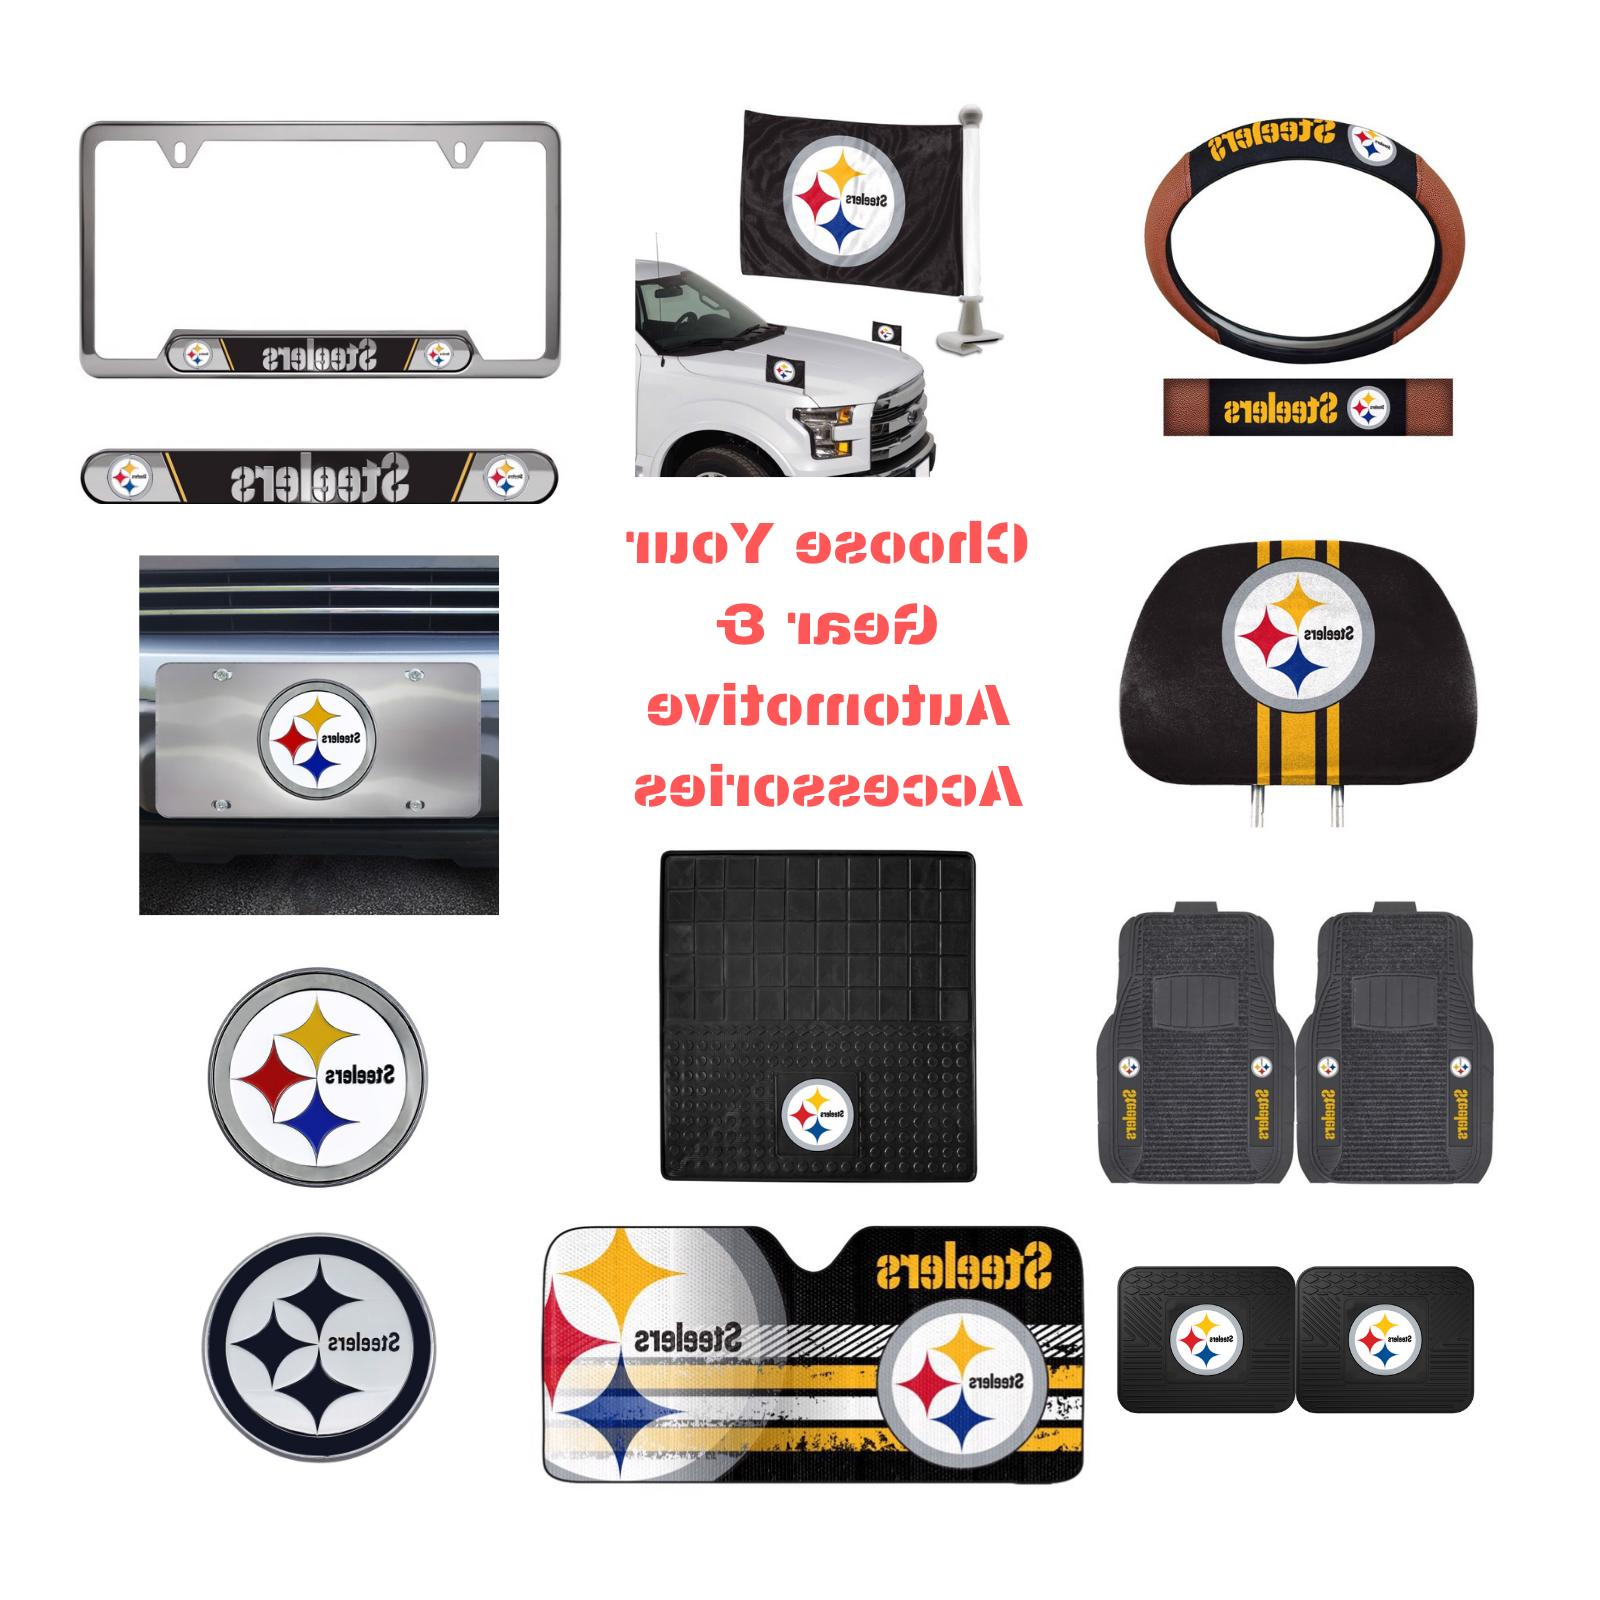 nfl pittsburgh steelers select your gear auto